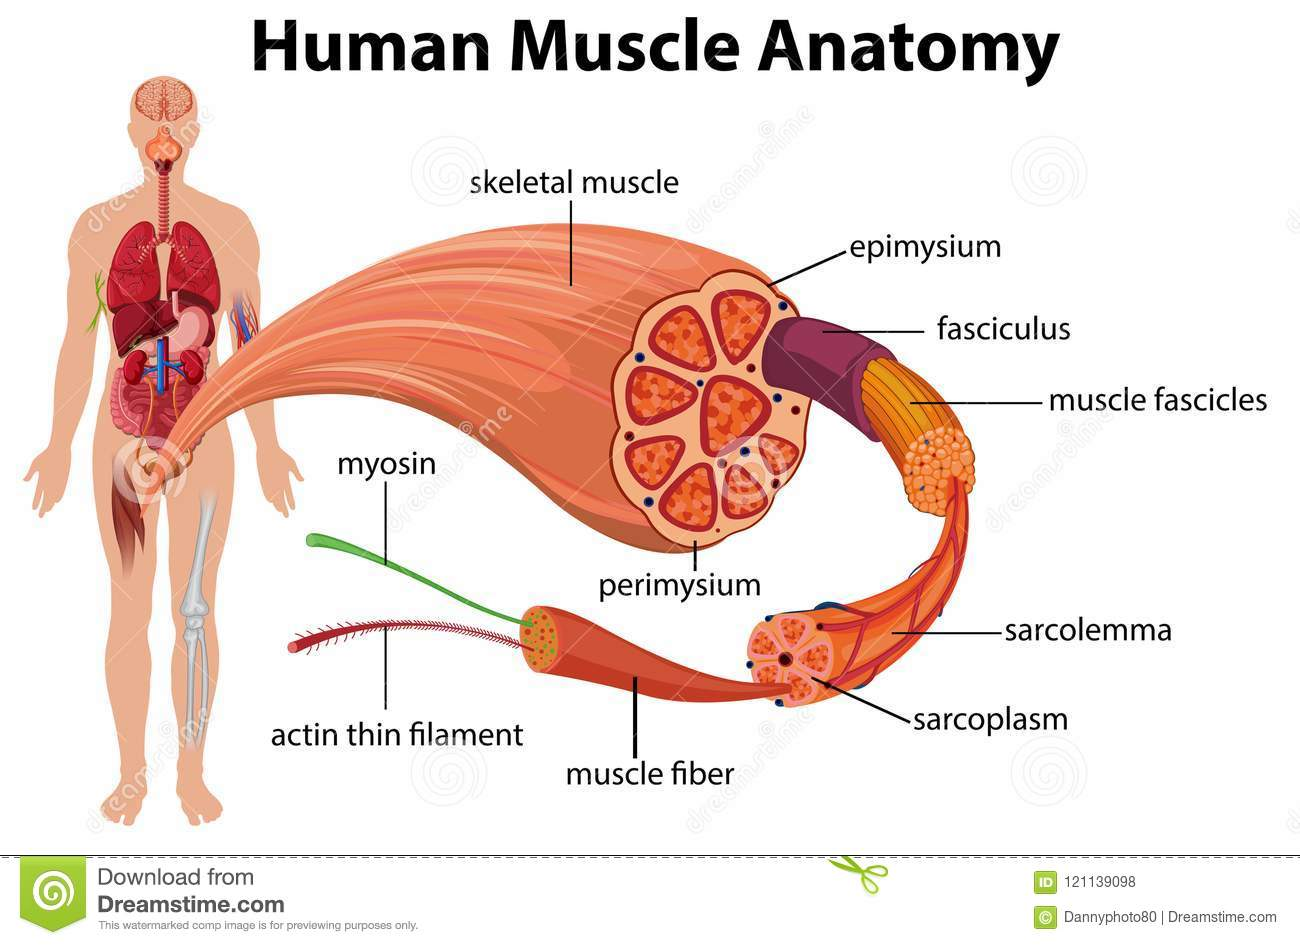 Human Muscle Anatomy Diagram Stock Vector Illustration Of Body